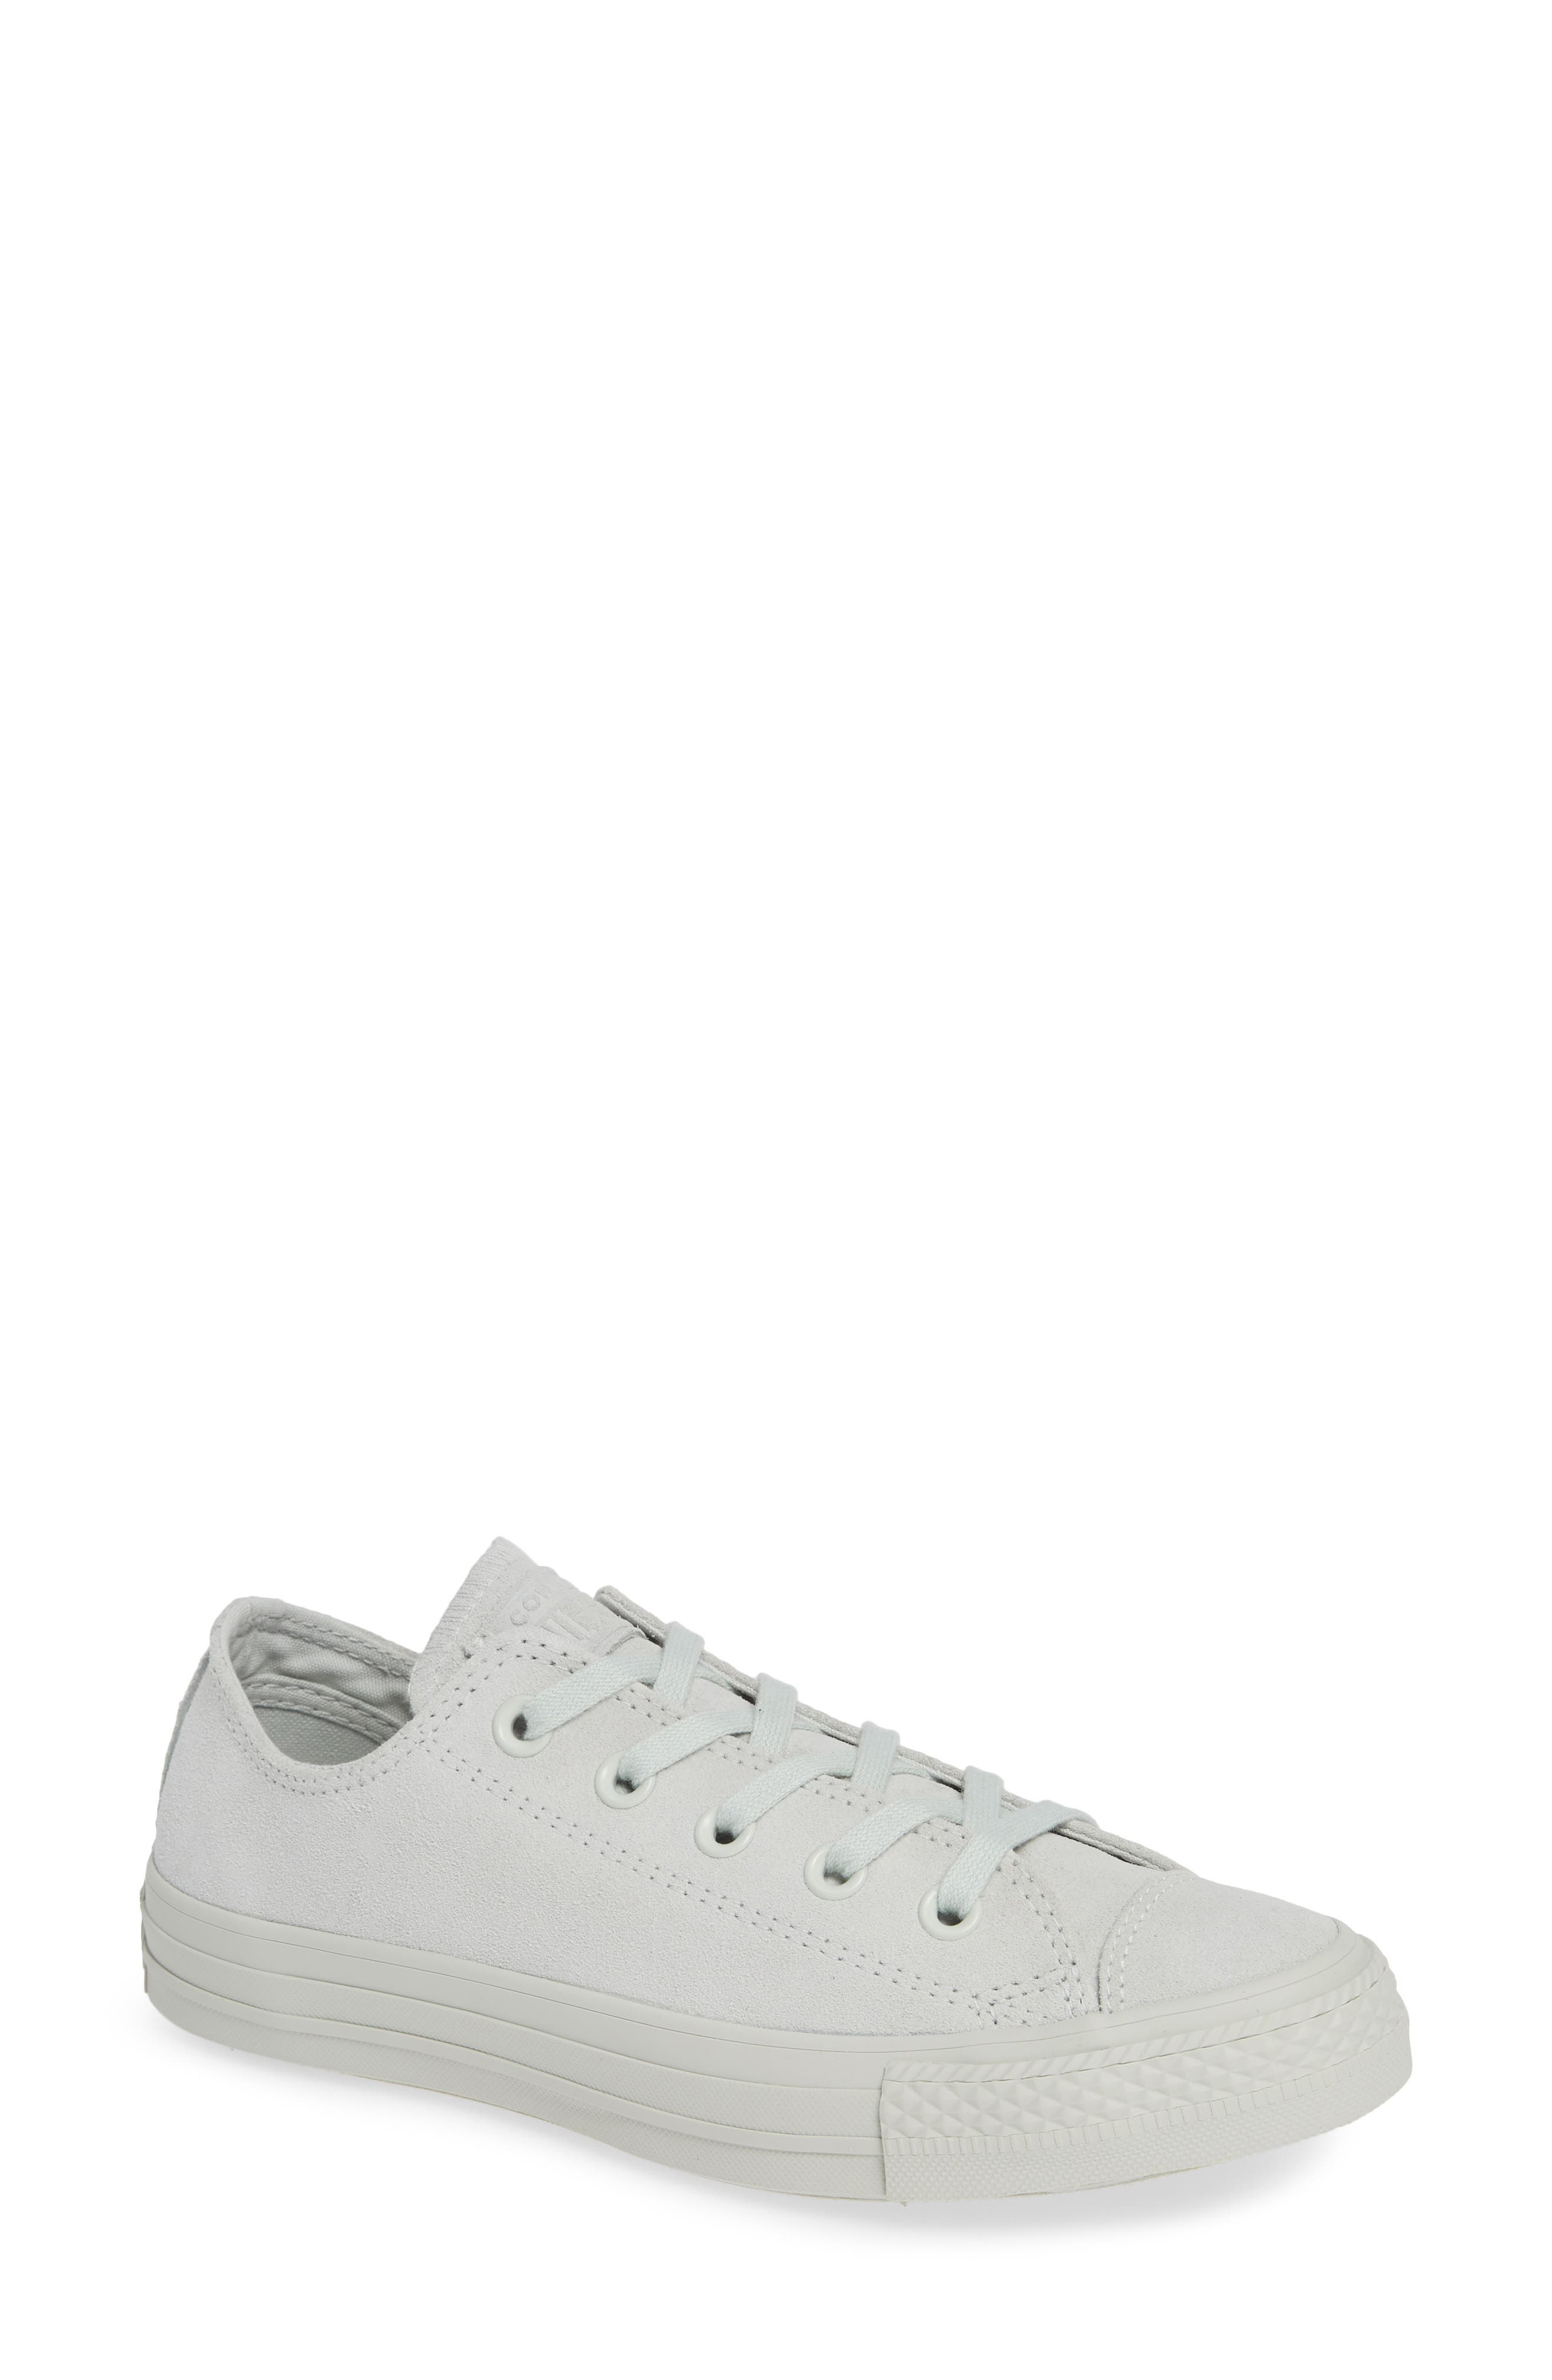 Chuck Taylor<sup>®</sup> All Star<sup>®</sup> Ox Sneaker,                             Main thumbnail 1, color,                             LIGHT SILVER SUEDE